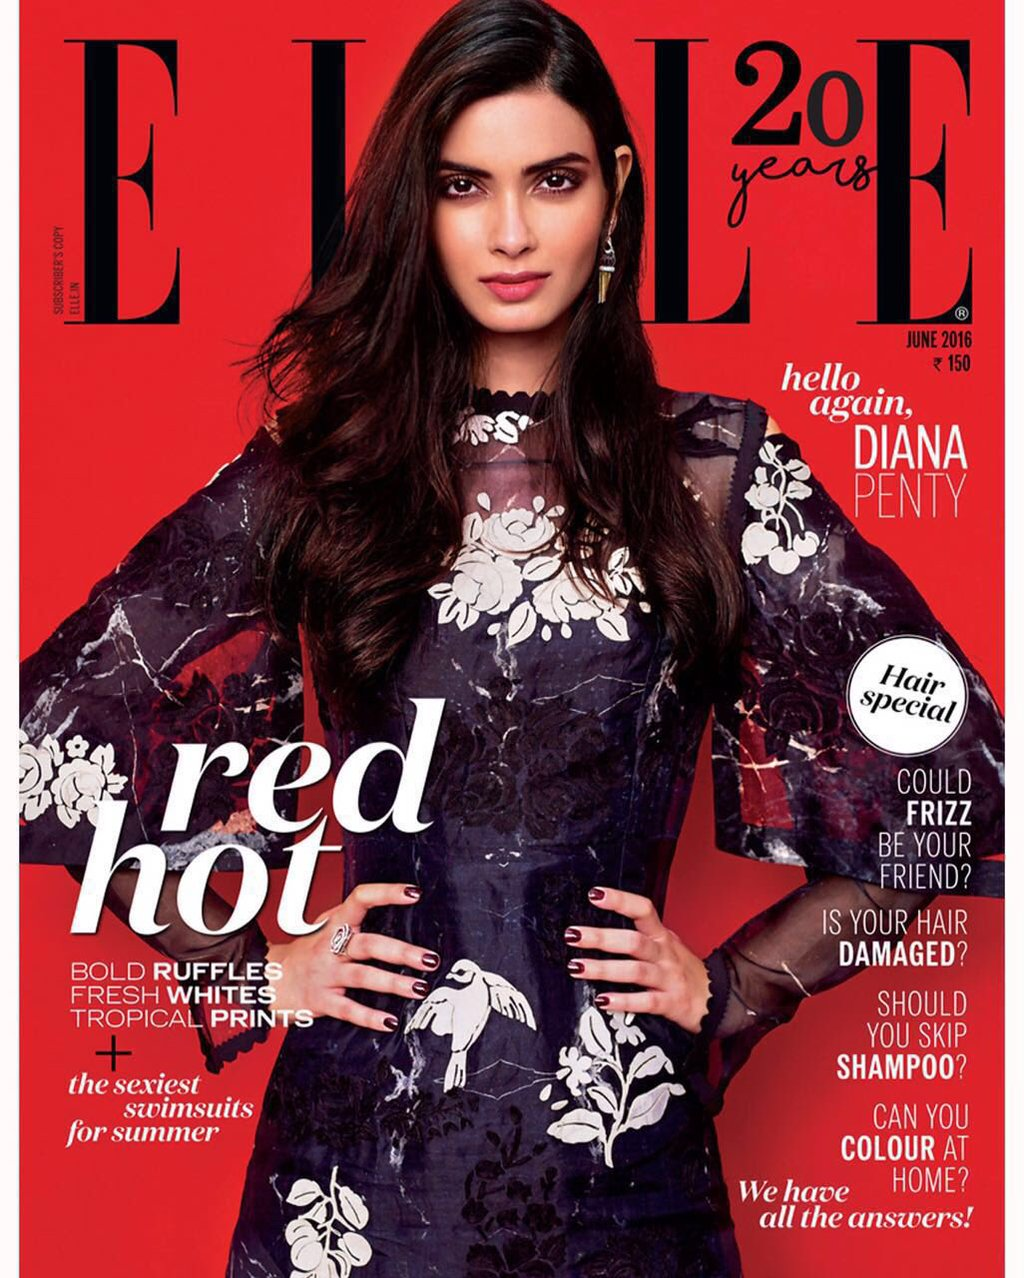 Diana Penty On The Cover Of Elle Magazine India June 2016